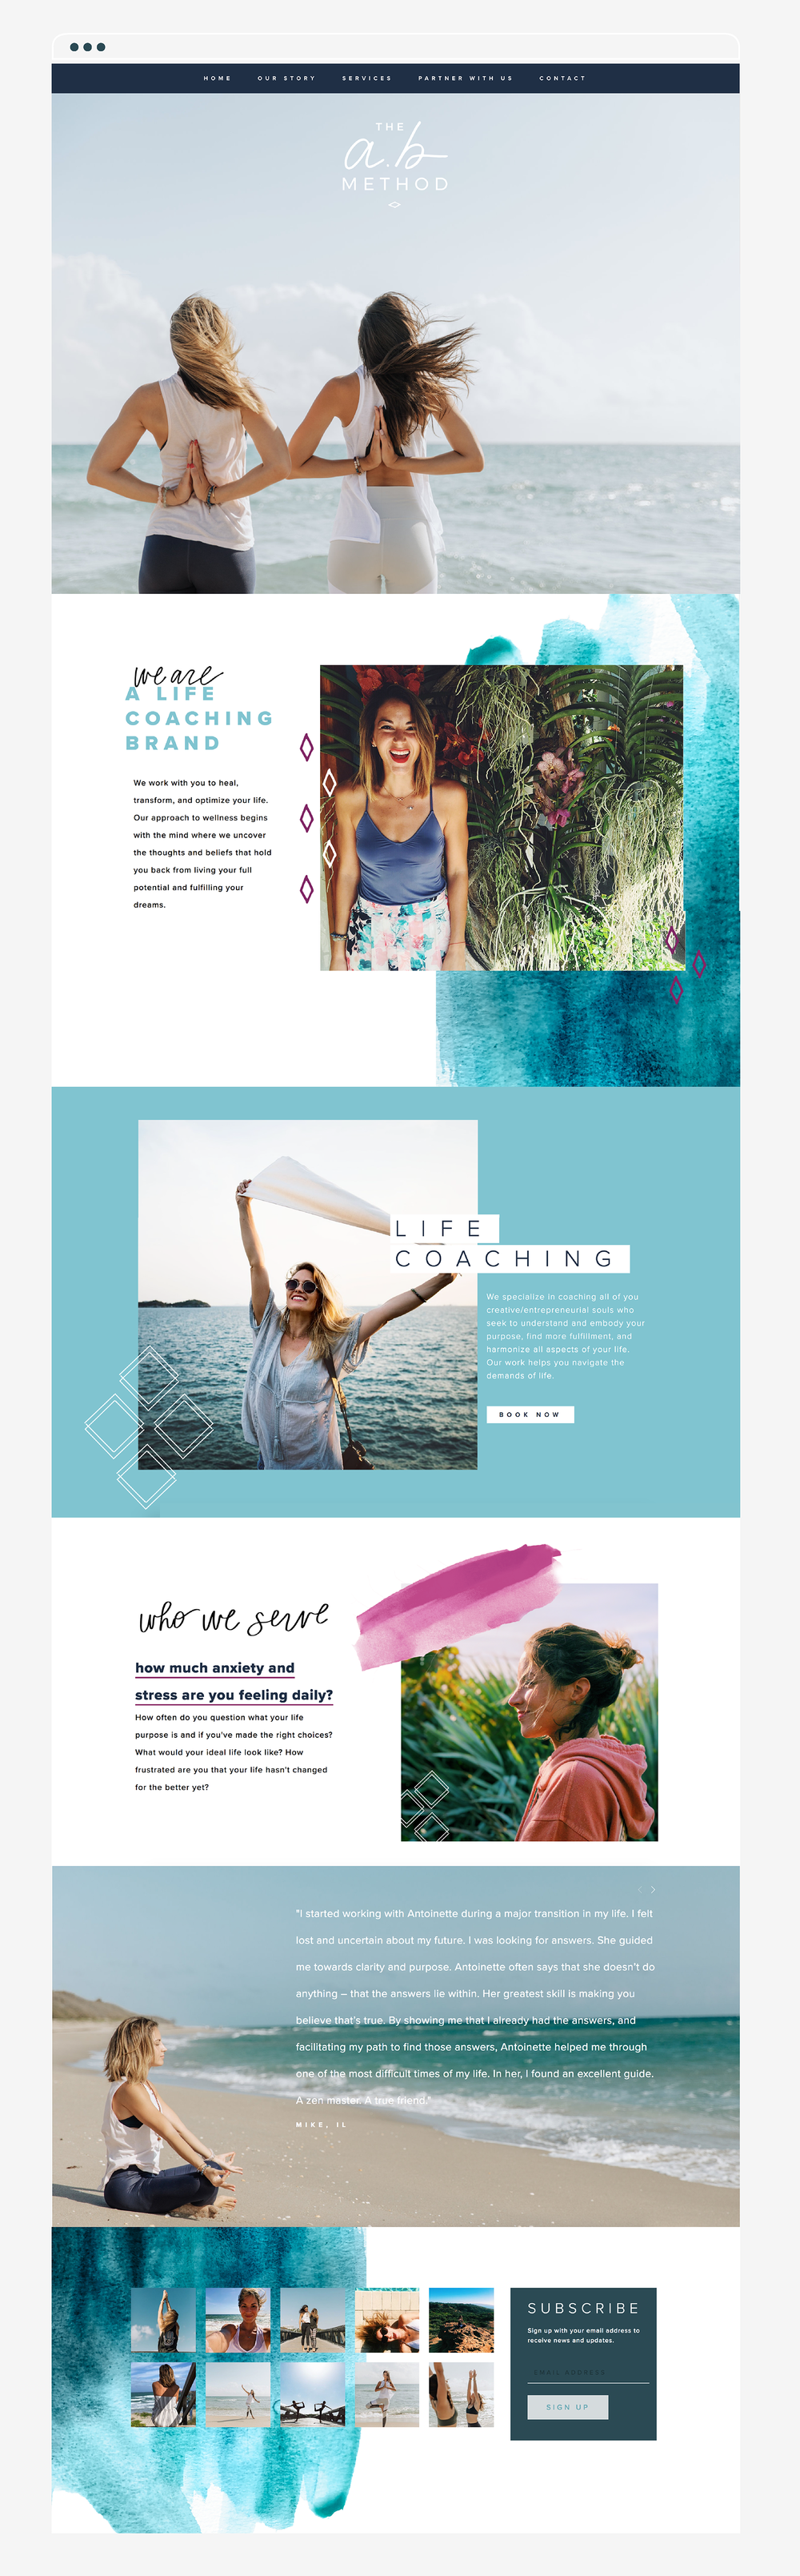 AbMethod_WebDesign_LifeCoach_Watercolor_Navy_Magenta_HOME2.png